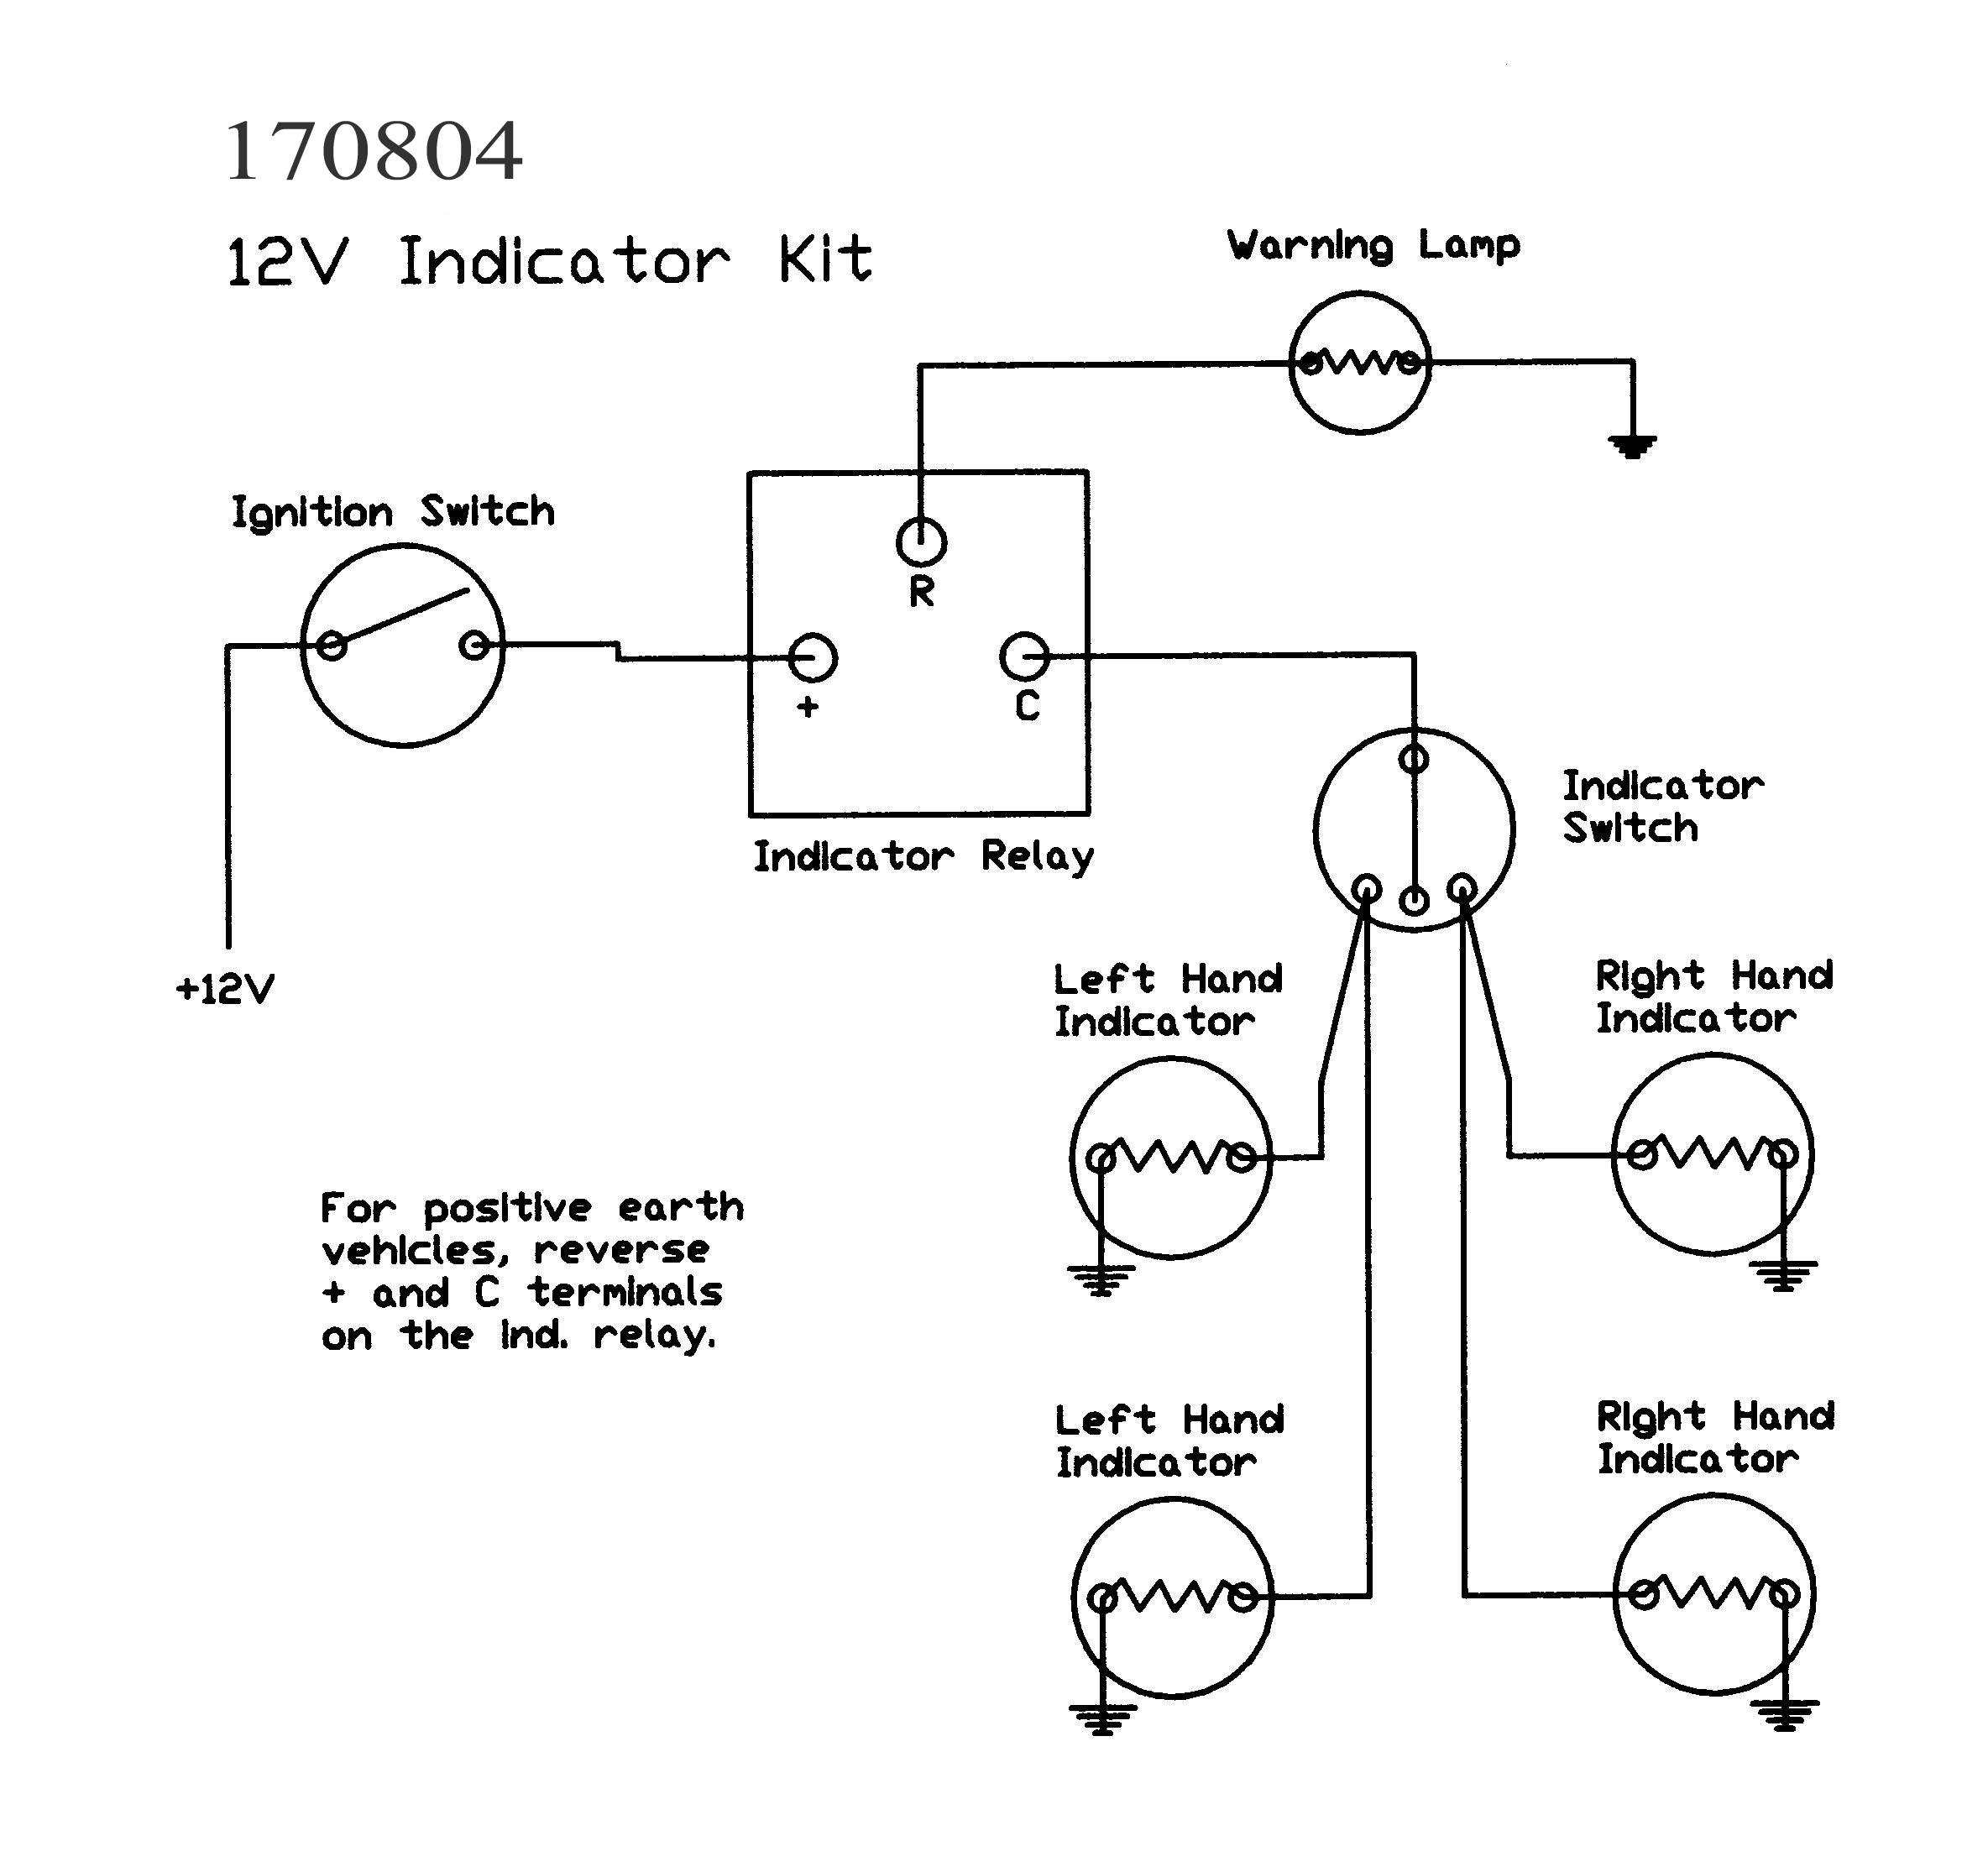 170804_(12v)_schematic?resize=665%2C625&ssl=1 flasher wiring diagram the best wiring diagram 2017 flasher unit wiring diagram at gsmportal.co